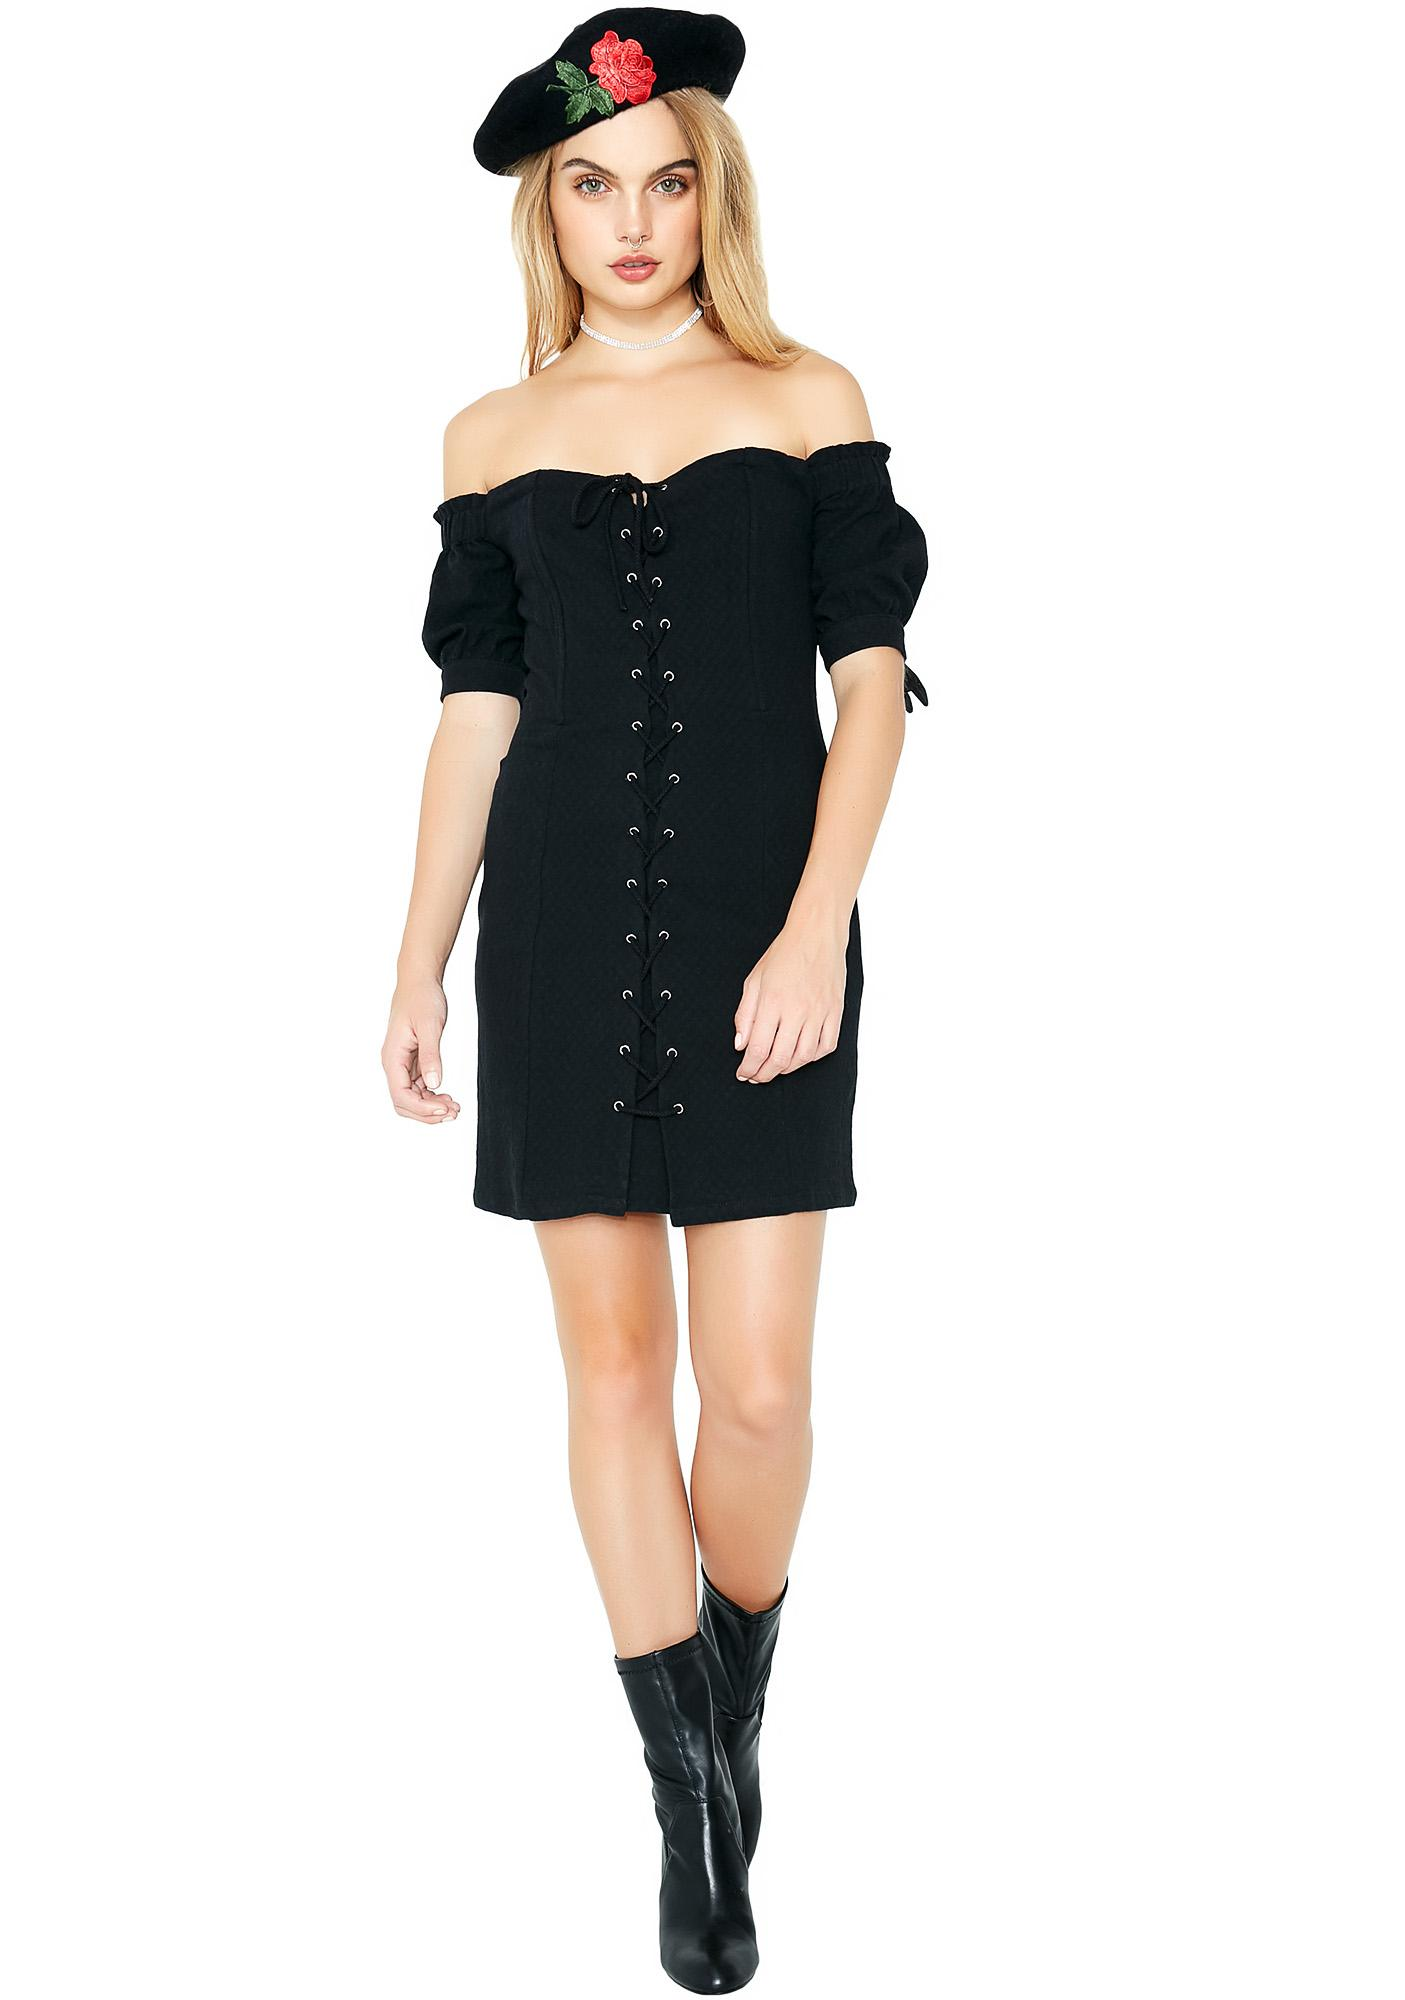 Lost For Words Lace-Up Dress